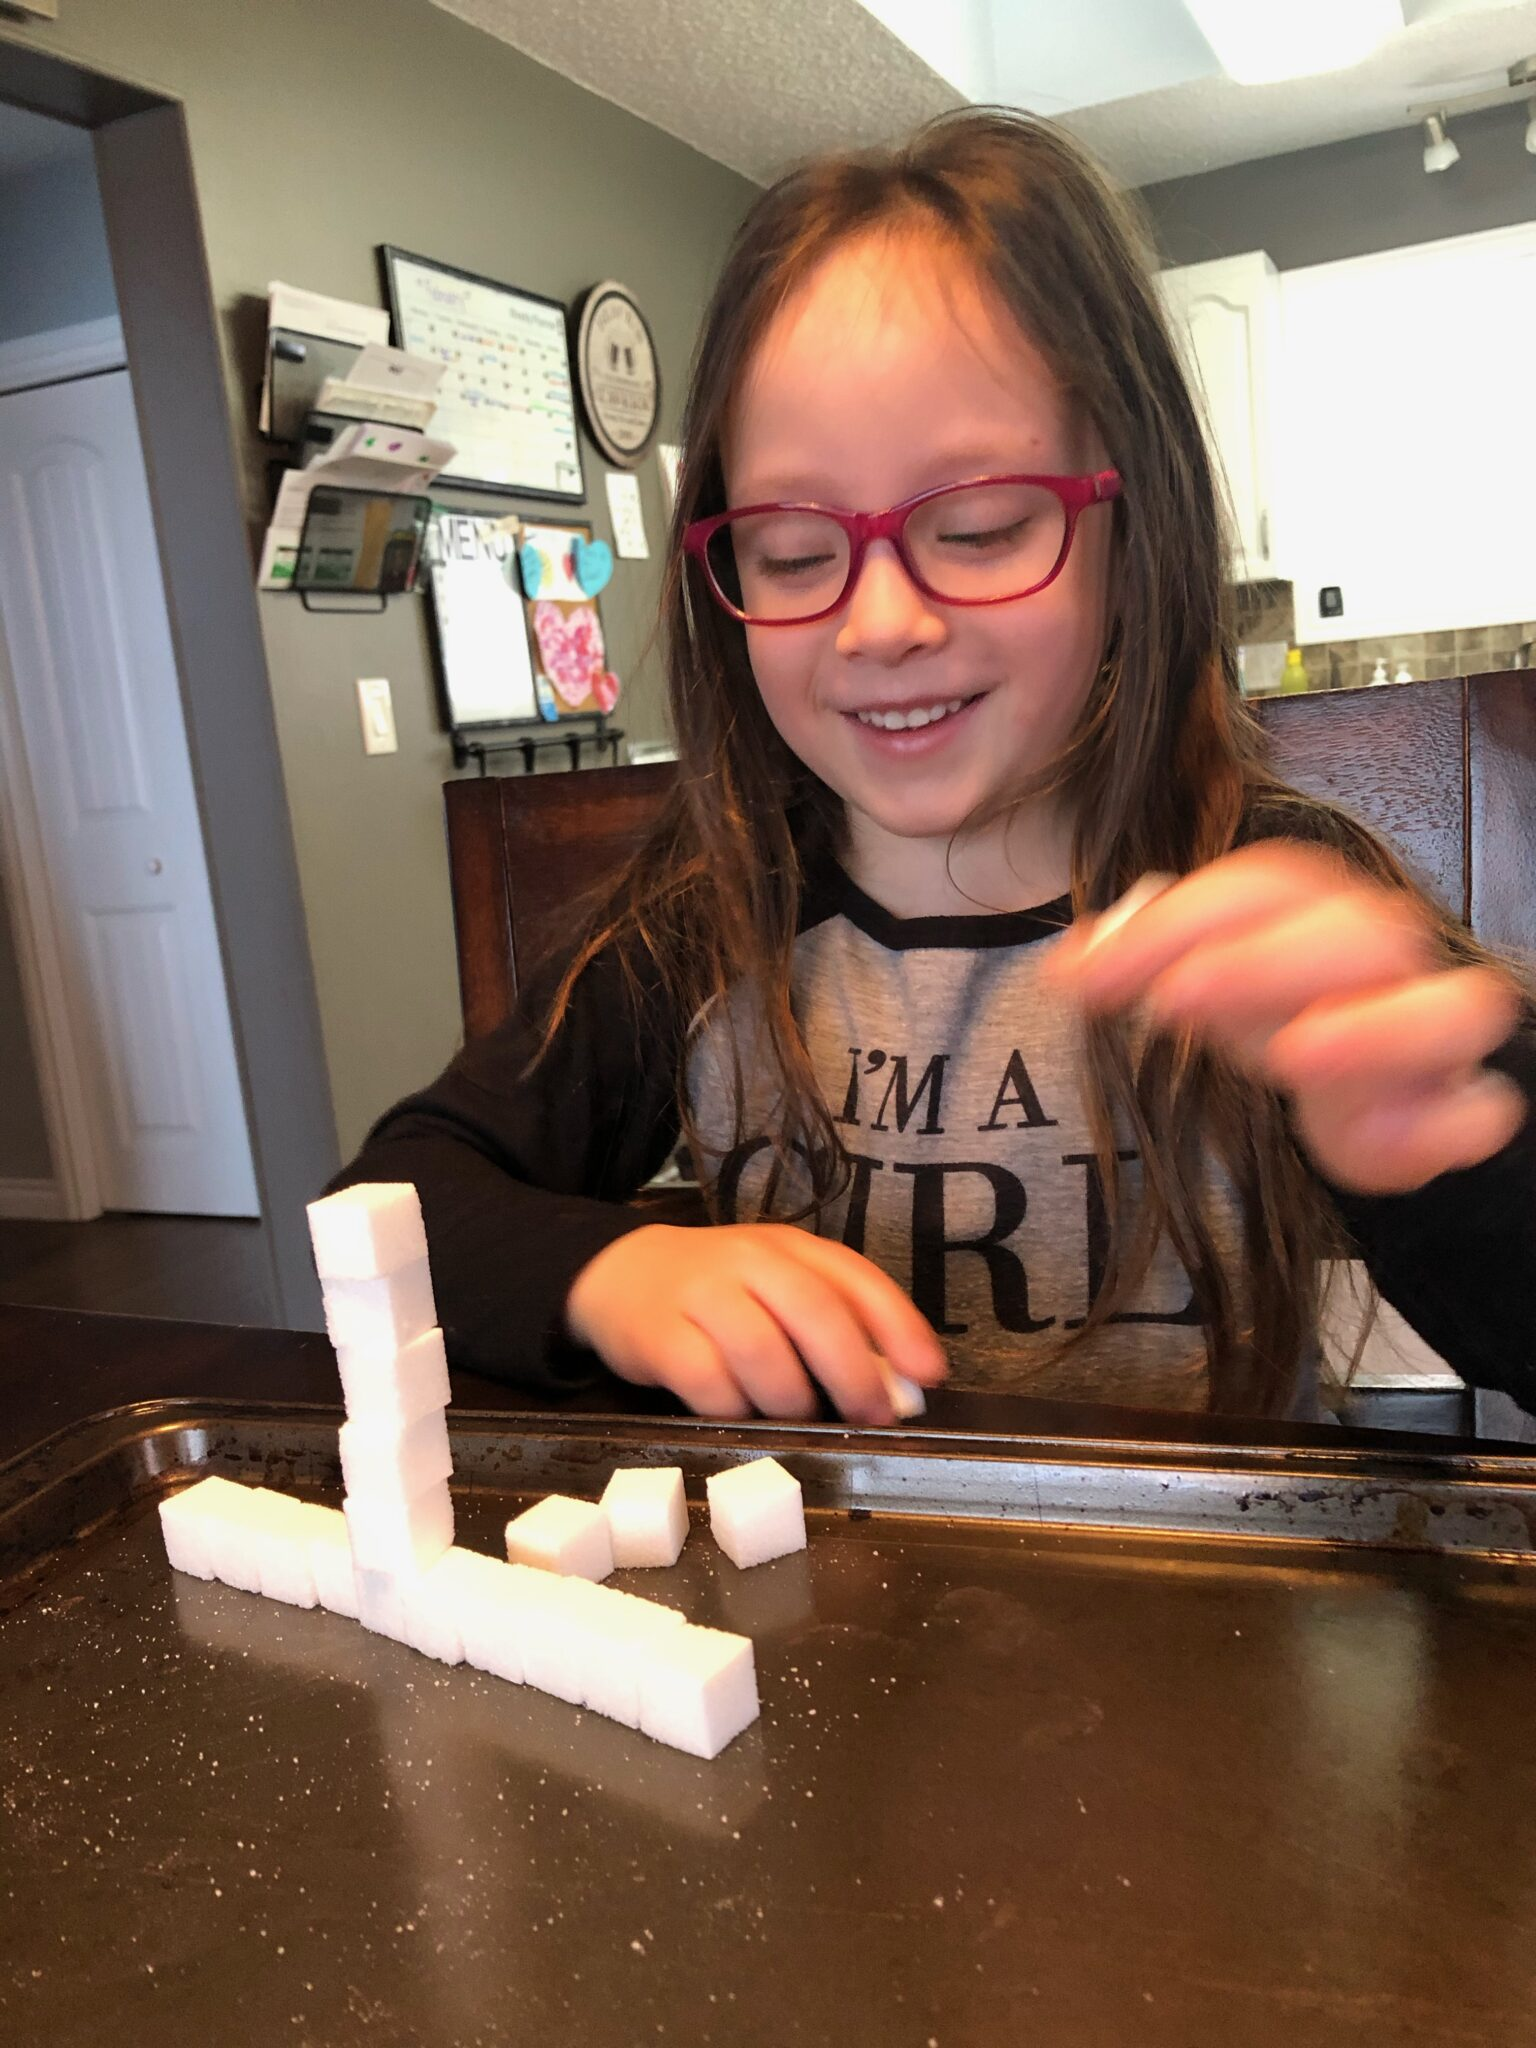 Grab a box of sugar cubes and get creative with these simple activities for kids. Fun from building towers to rainbow colored sugar cubes.